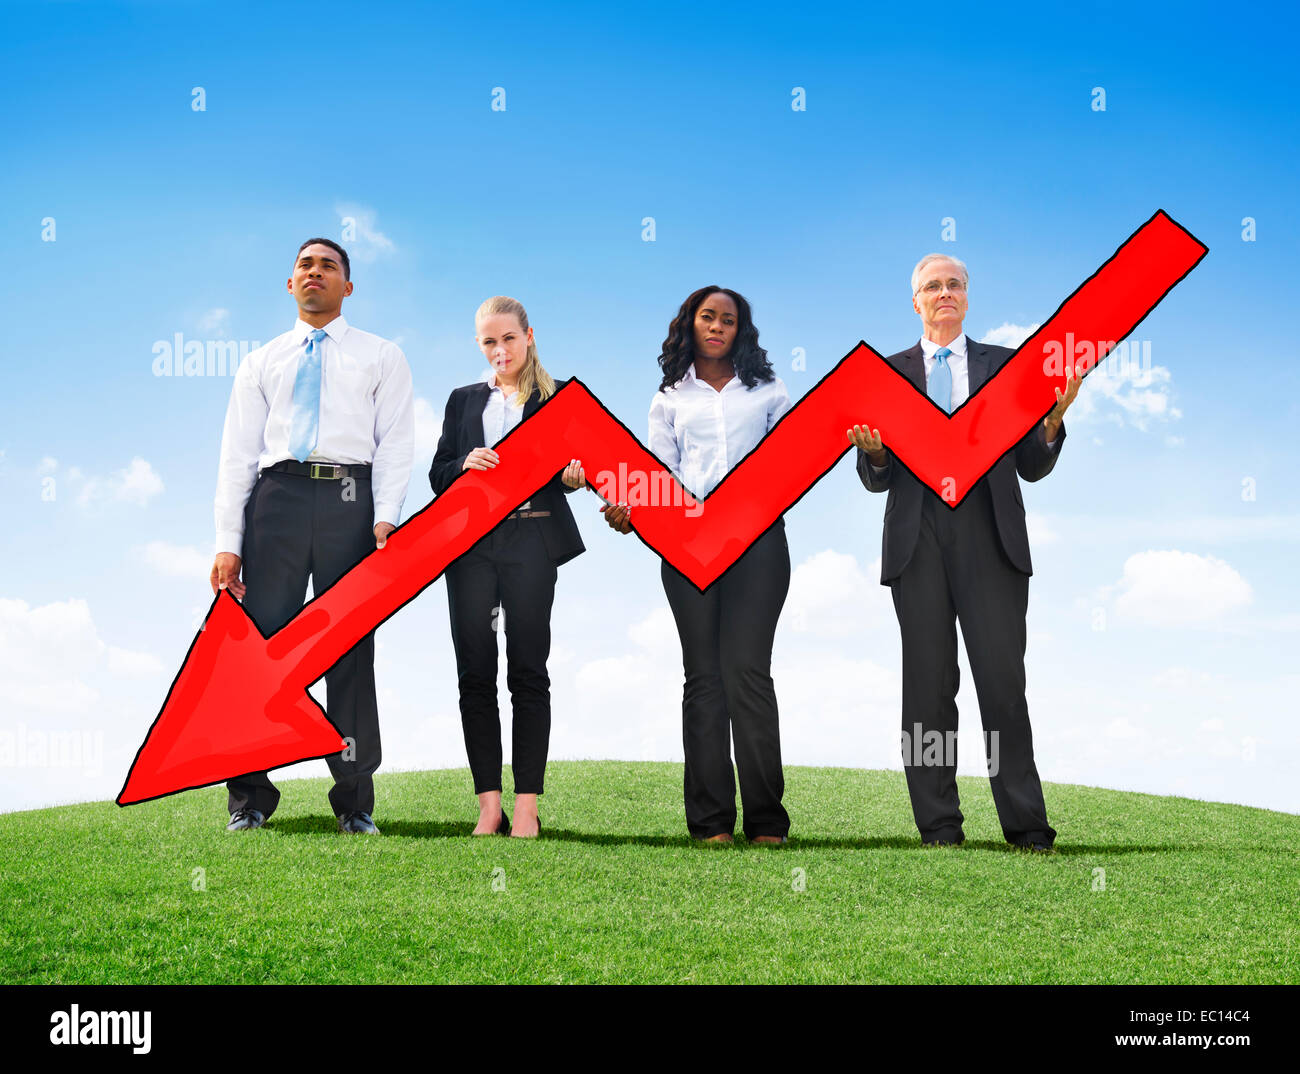 Angry Business People Holding Arrow Sign Downsizing - Stock Image